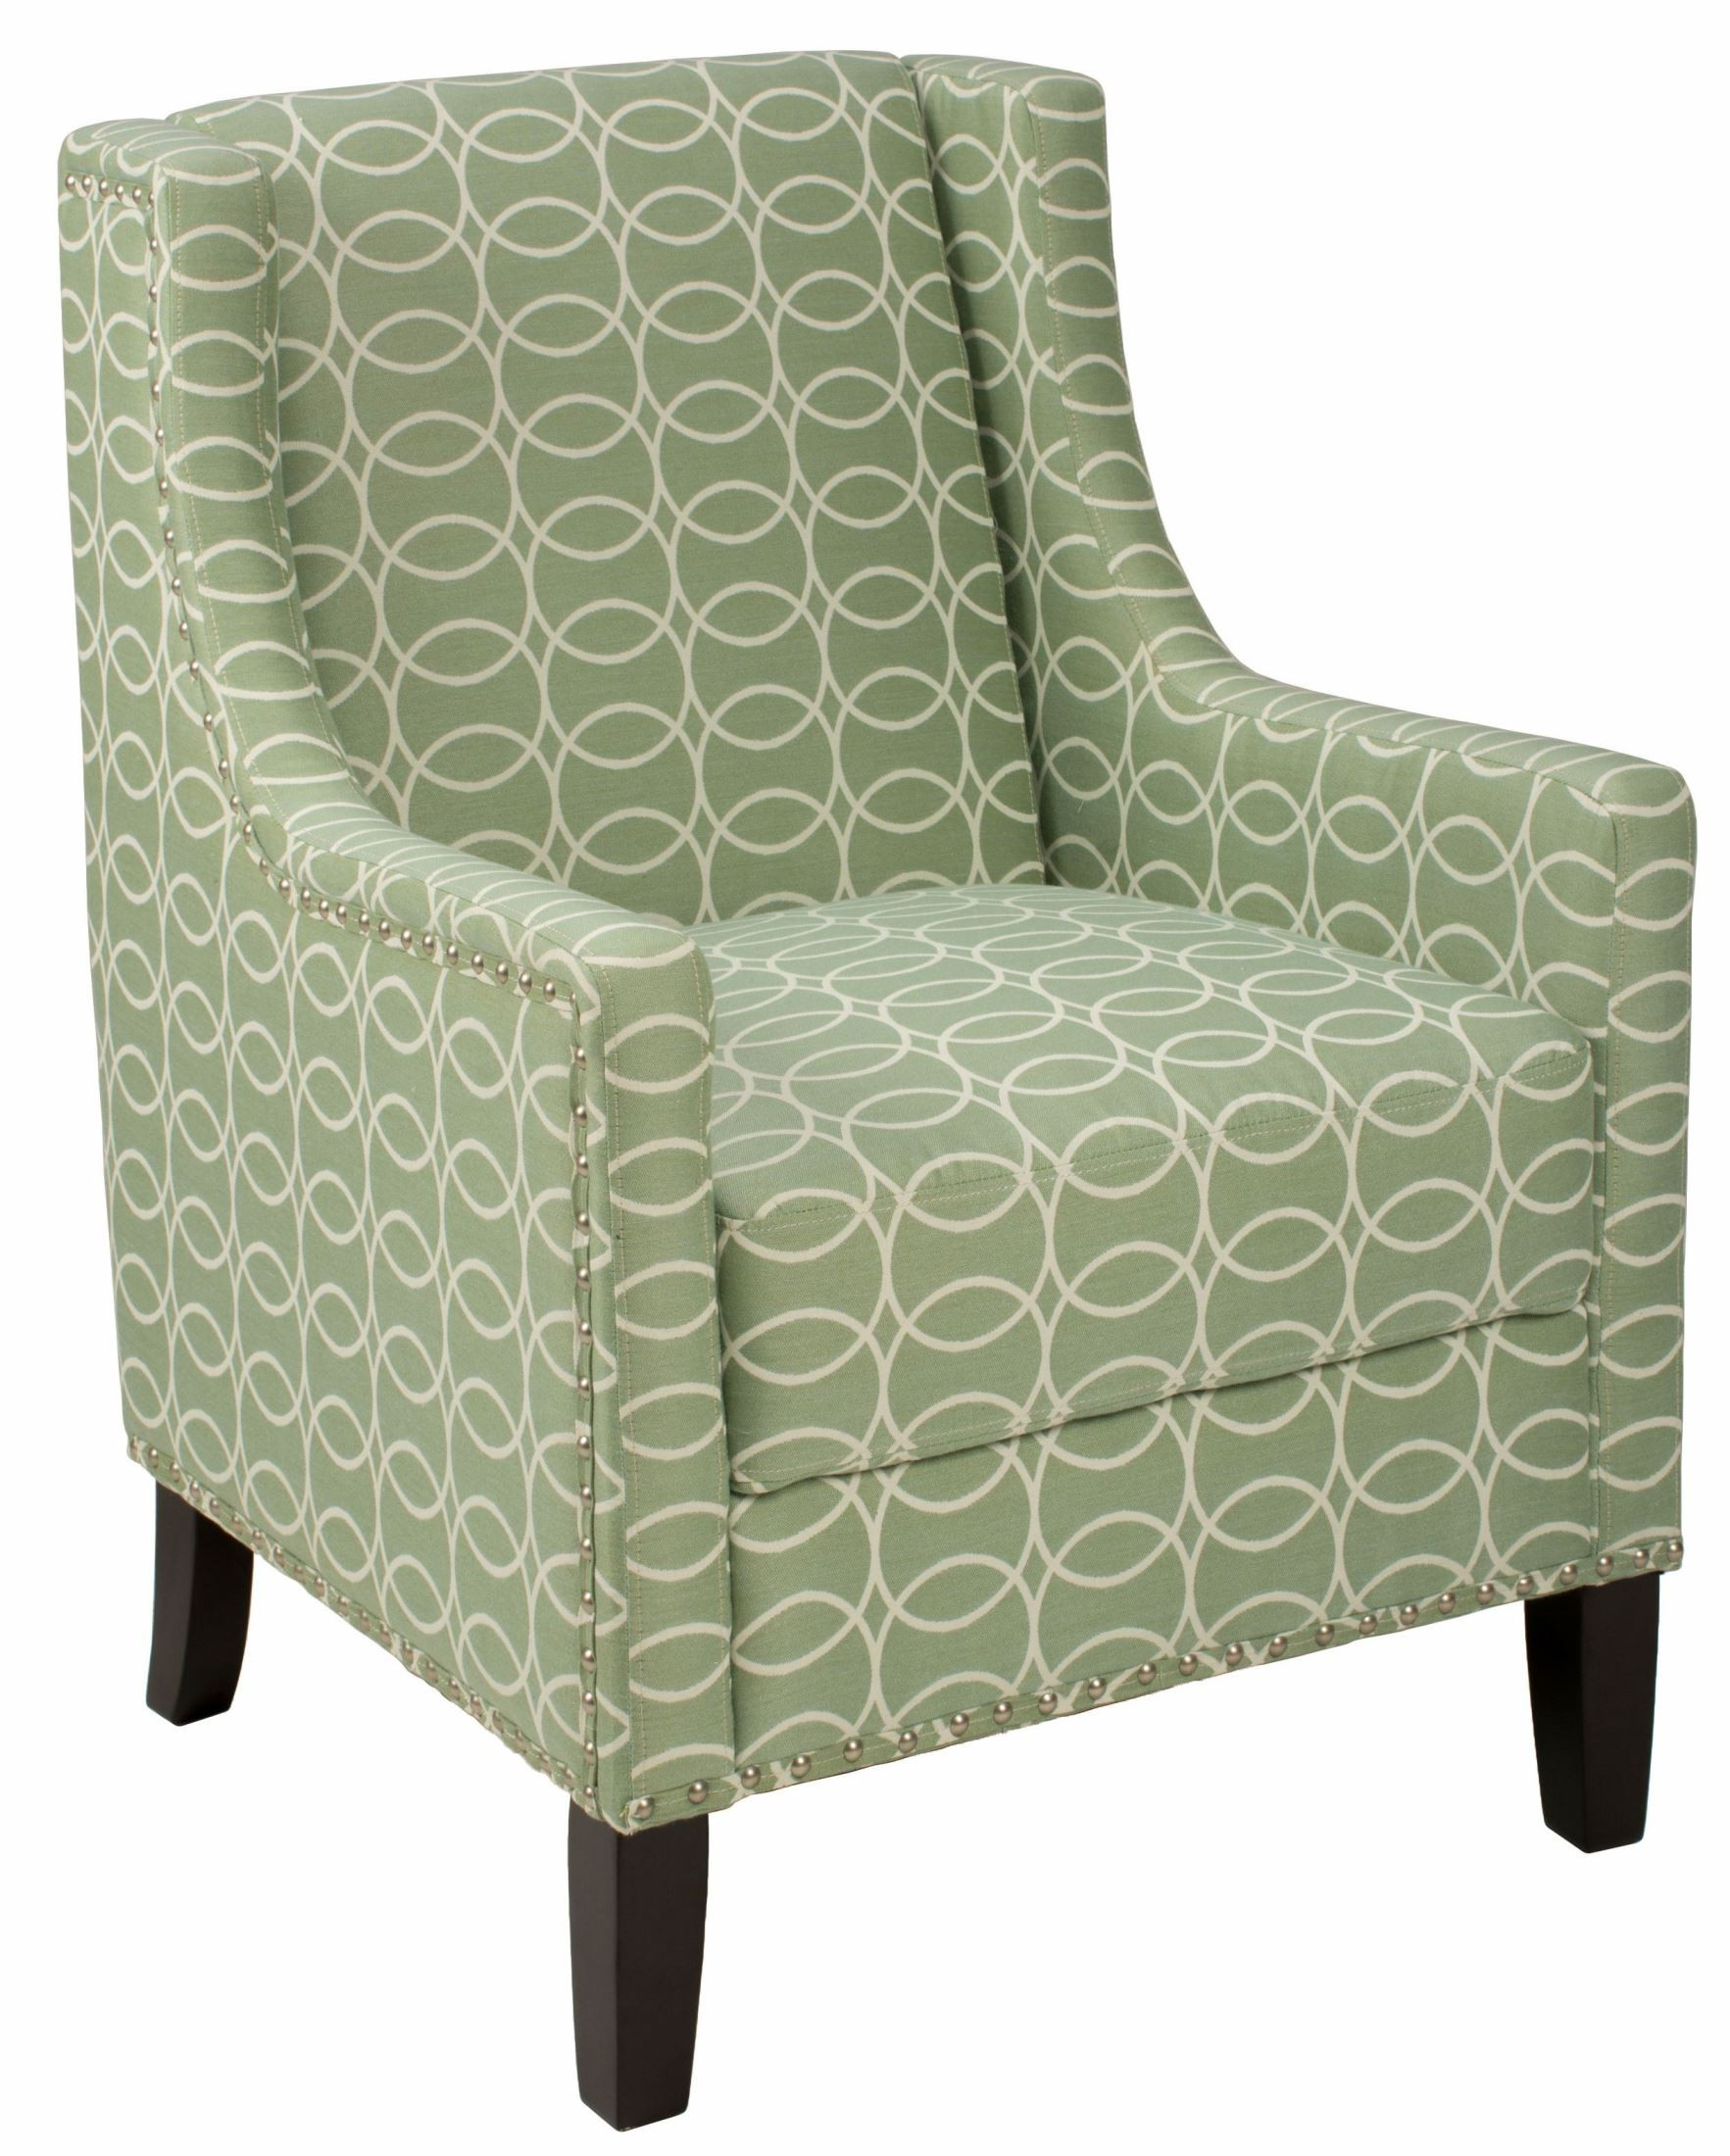 Mint Accent Chair Josie Mint Green Accent Chair Josie Ch Mint Jofran